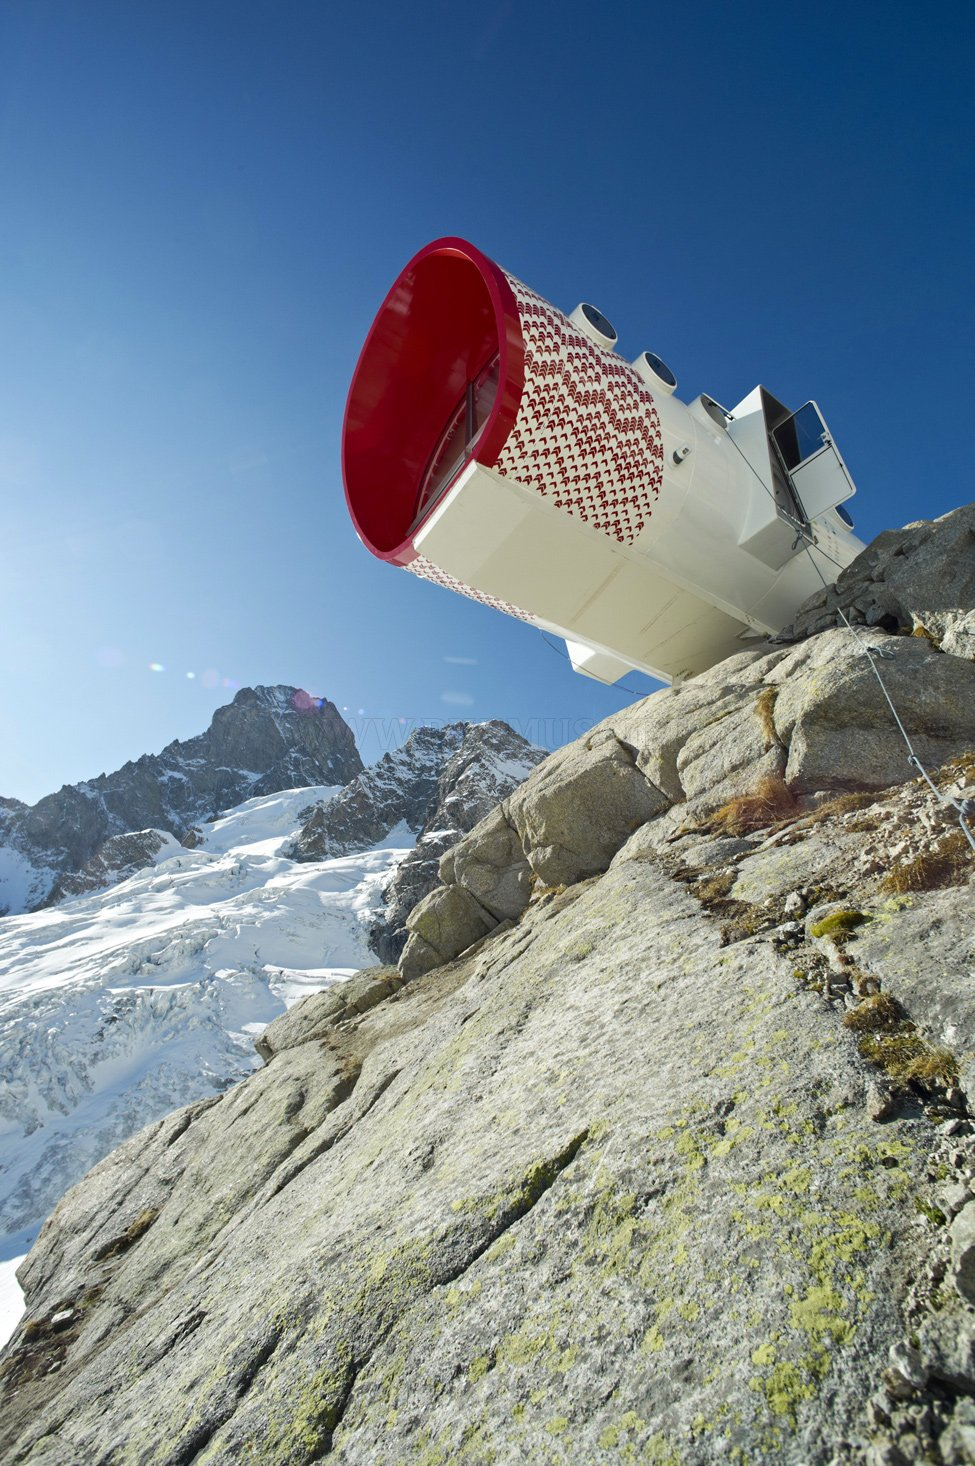 Refuge Gervasutti - a haven for rock climbers in the Alps